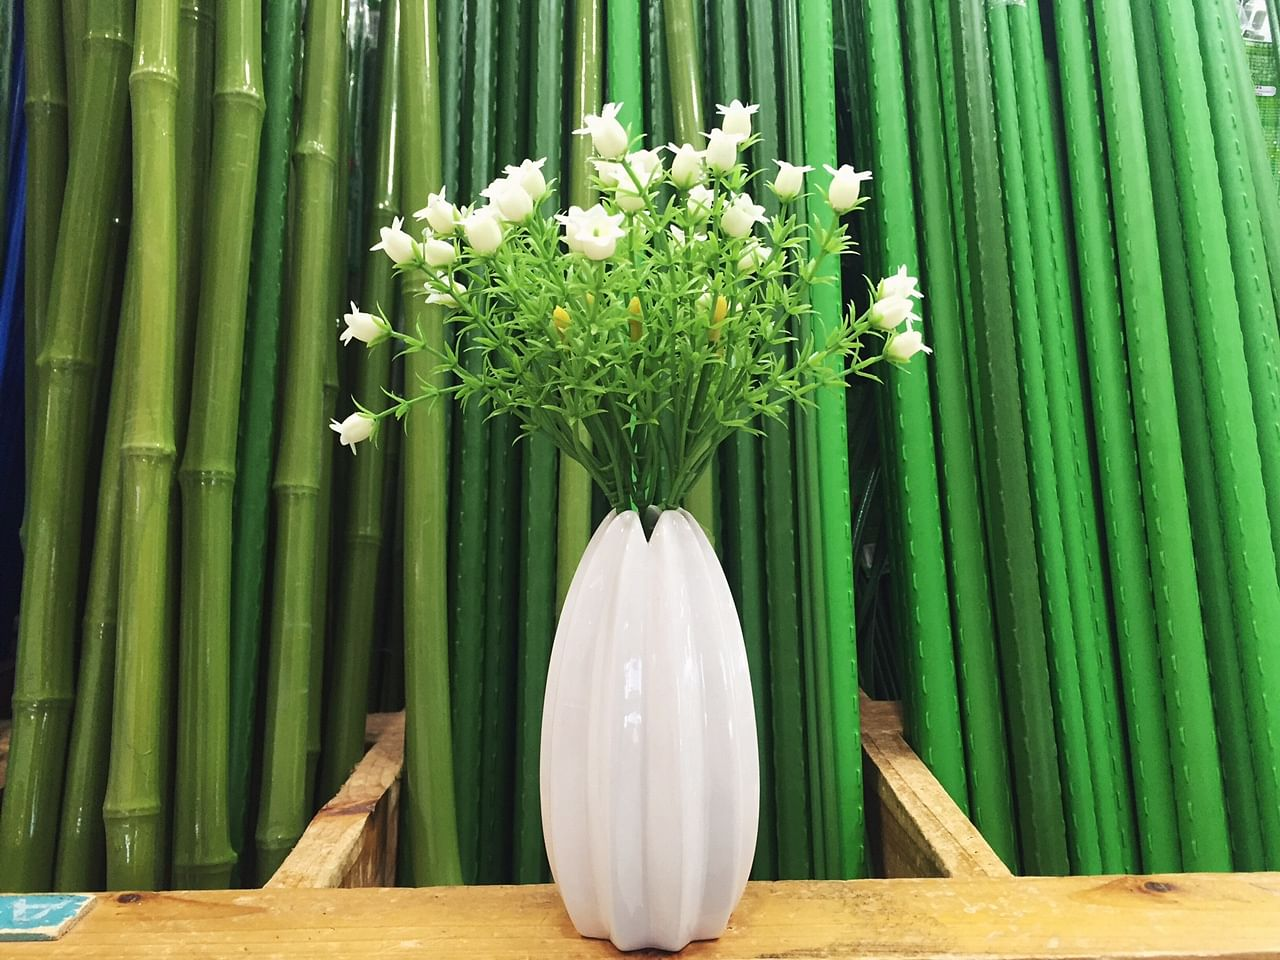 Must buys at daiso imm home decor singapore 7 vases of all sizes we particularly like this one which reminds us of an upside down juicy salif reviewsmspy